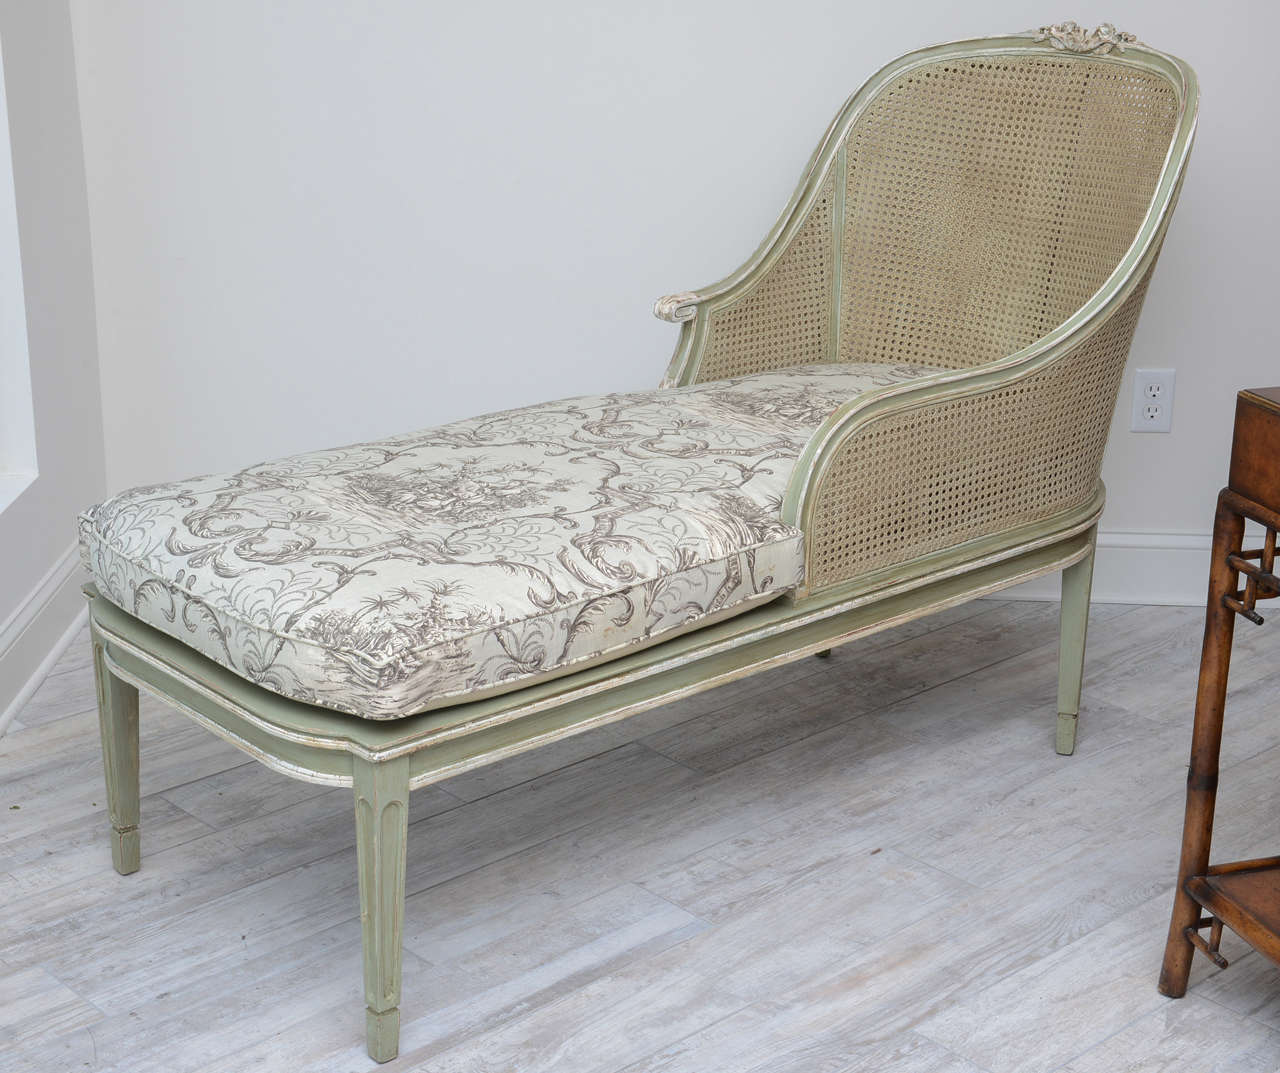 Louis xvi style french caned chaise lounge for sale at 1stdibs - Chaise louis xvi pas cher ...